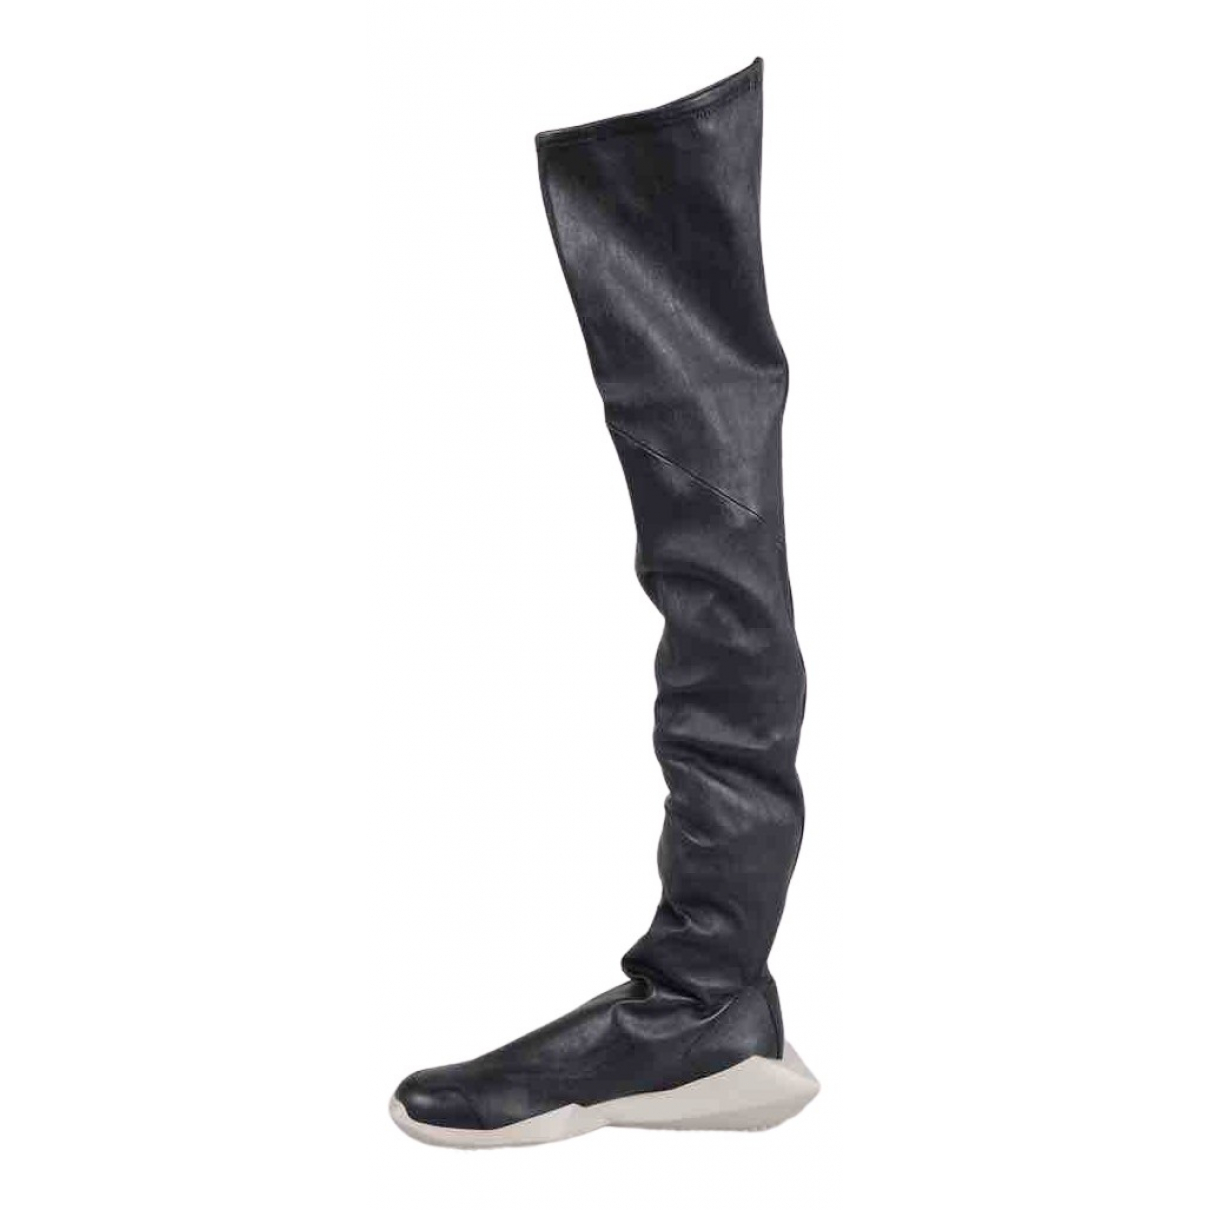 Adidas & Rick Owens N Black Leather Boots for Women 5 UK